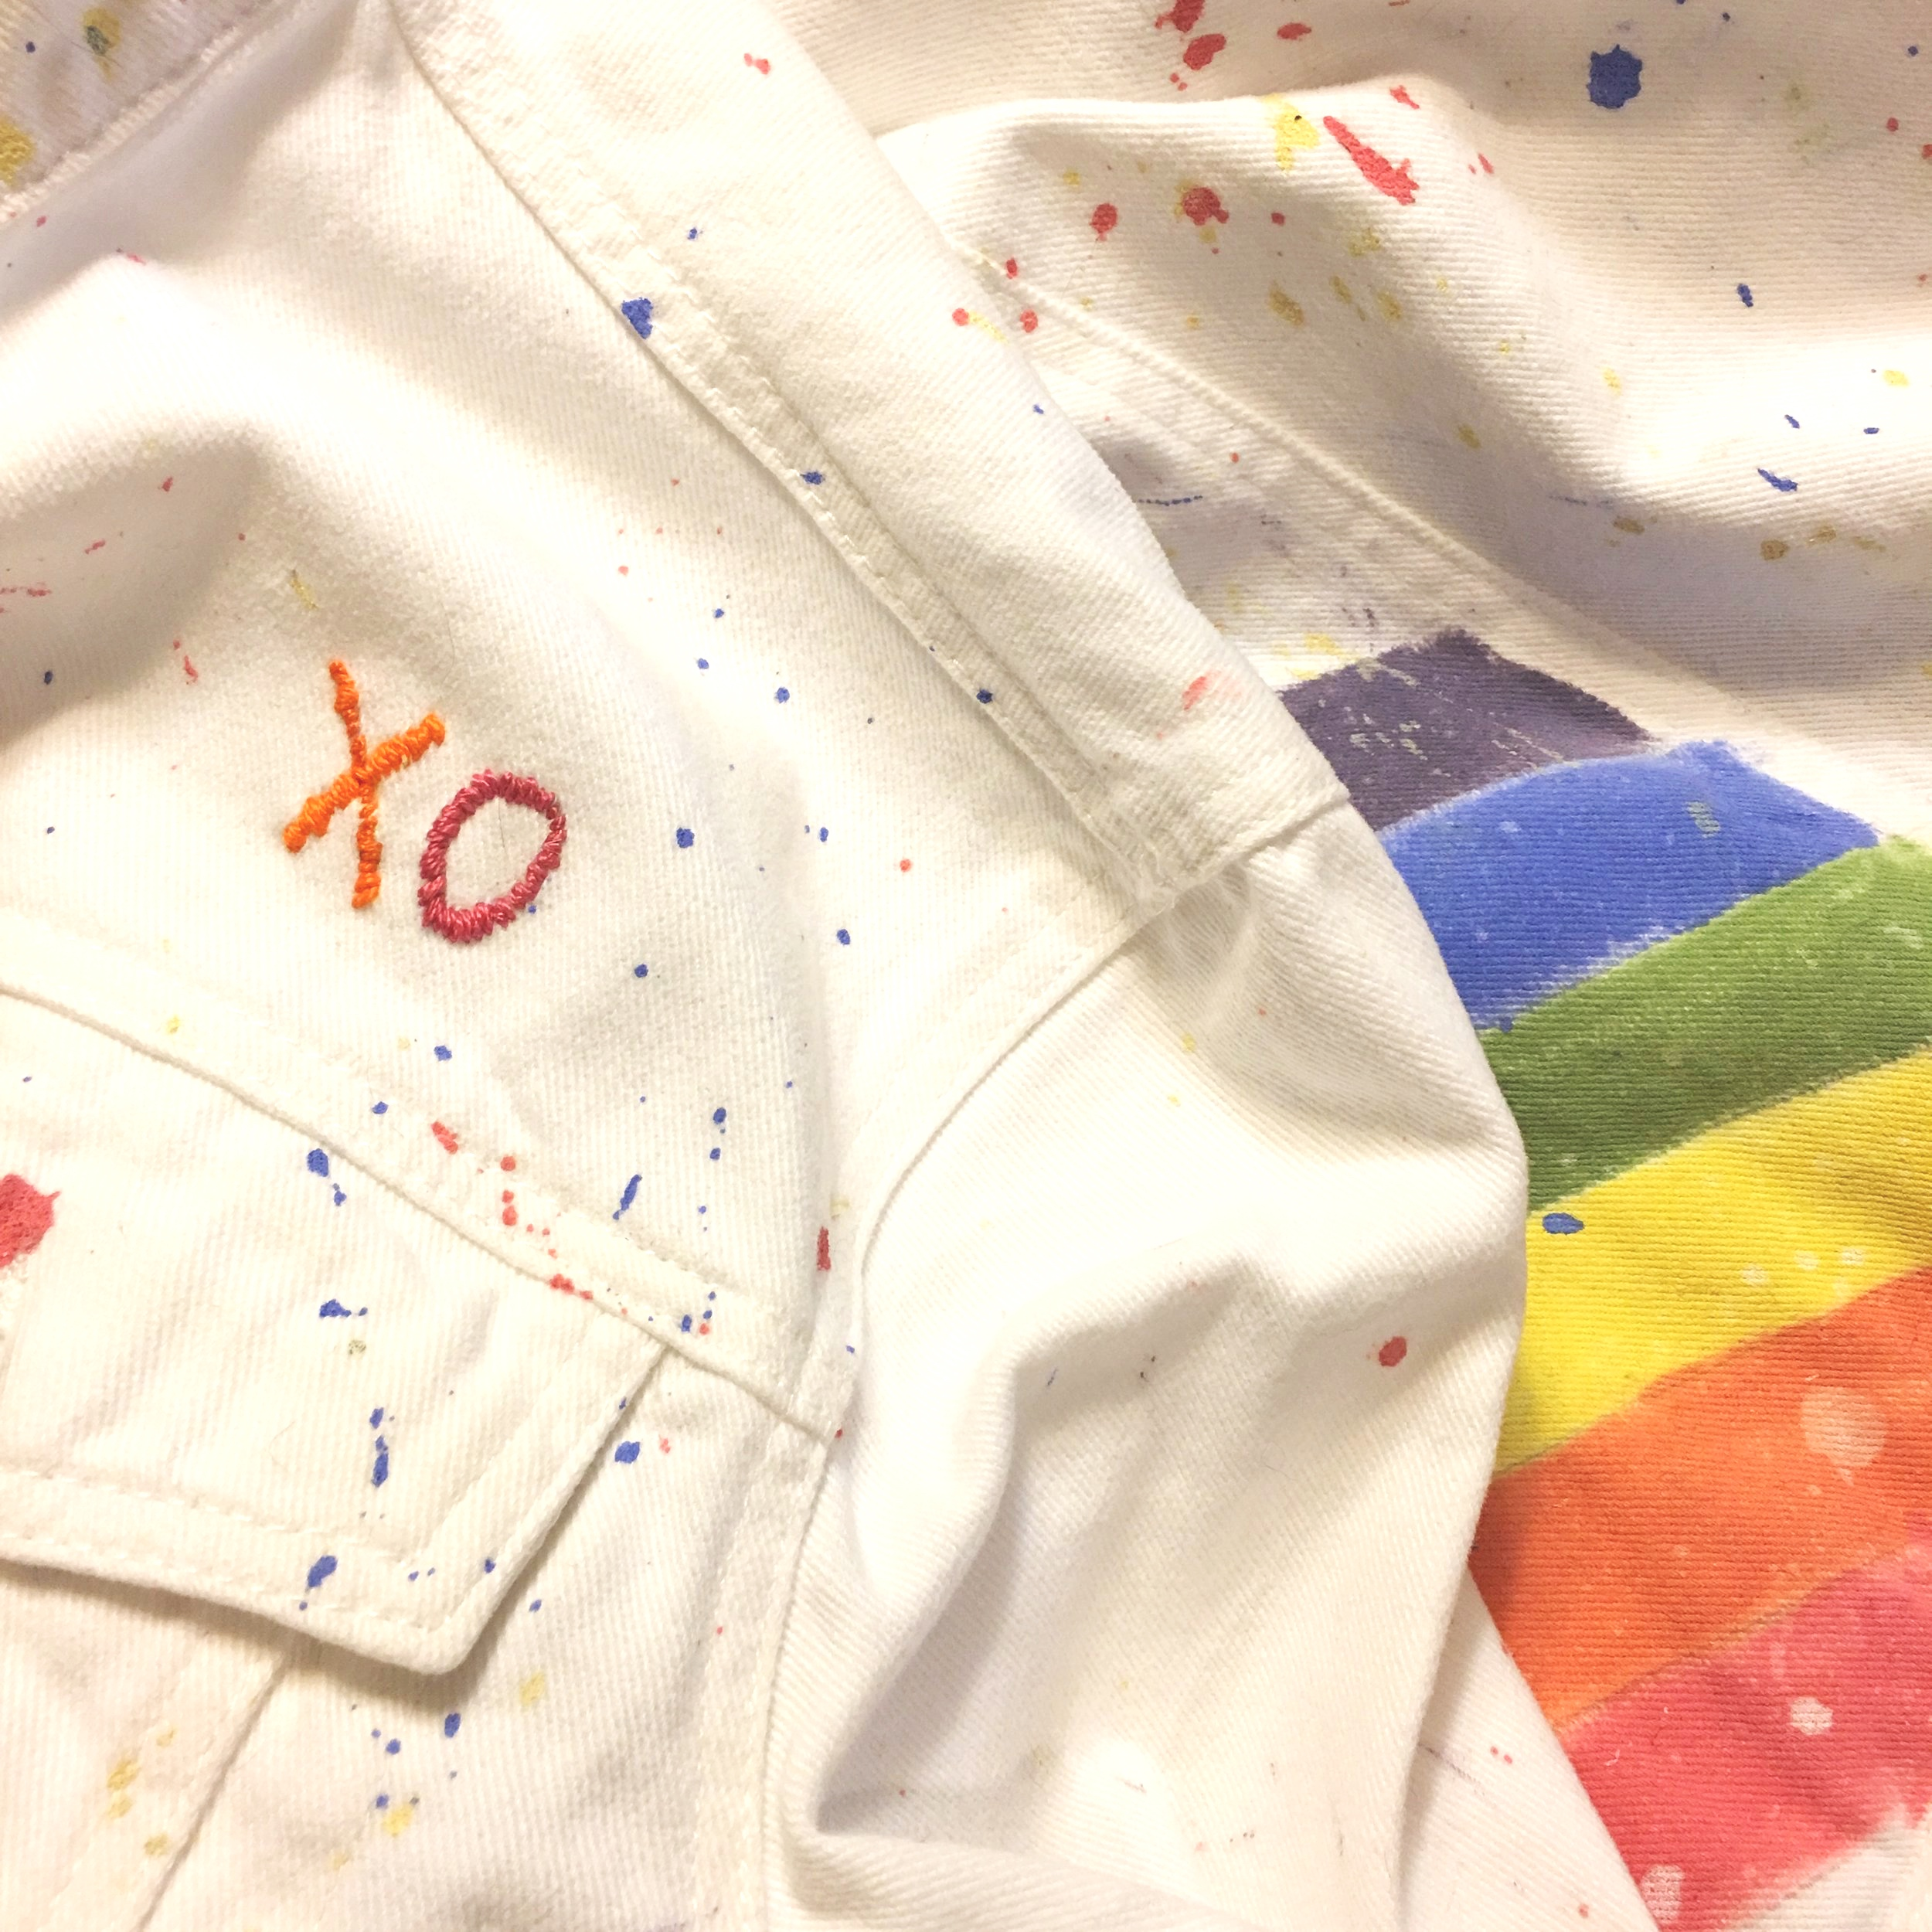 Rainbow Denim - Hand Painted and Embroidered Rainbow Denim Jacket